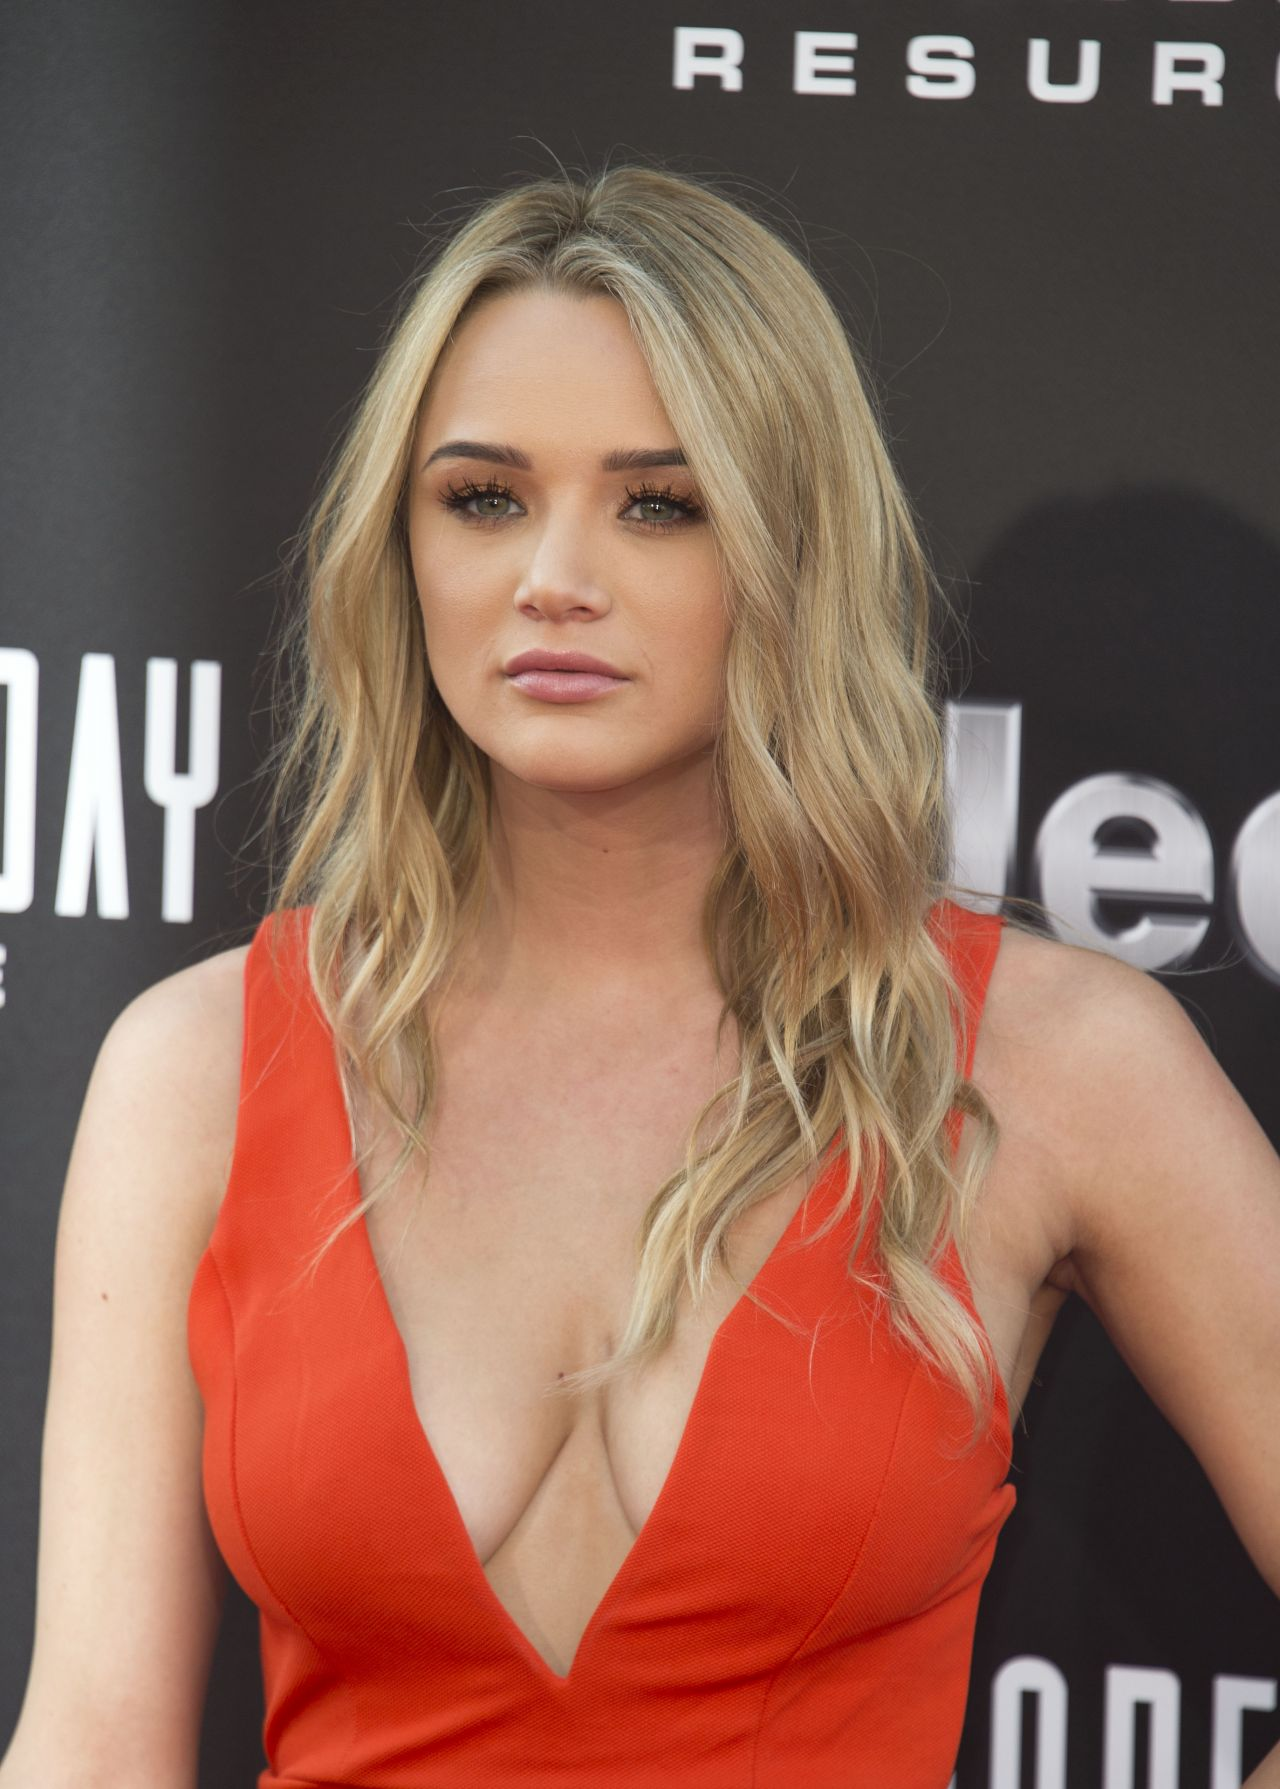 Hunter King nudes (42 photos), Ass, Sideboobs, Boobs, butt 2006